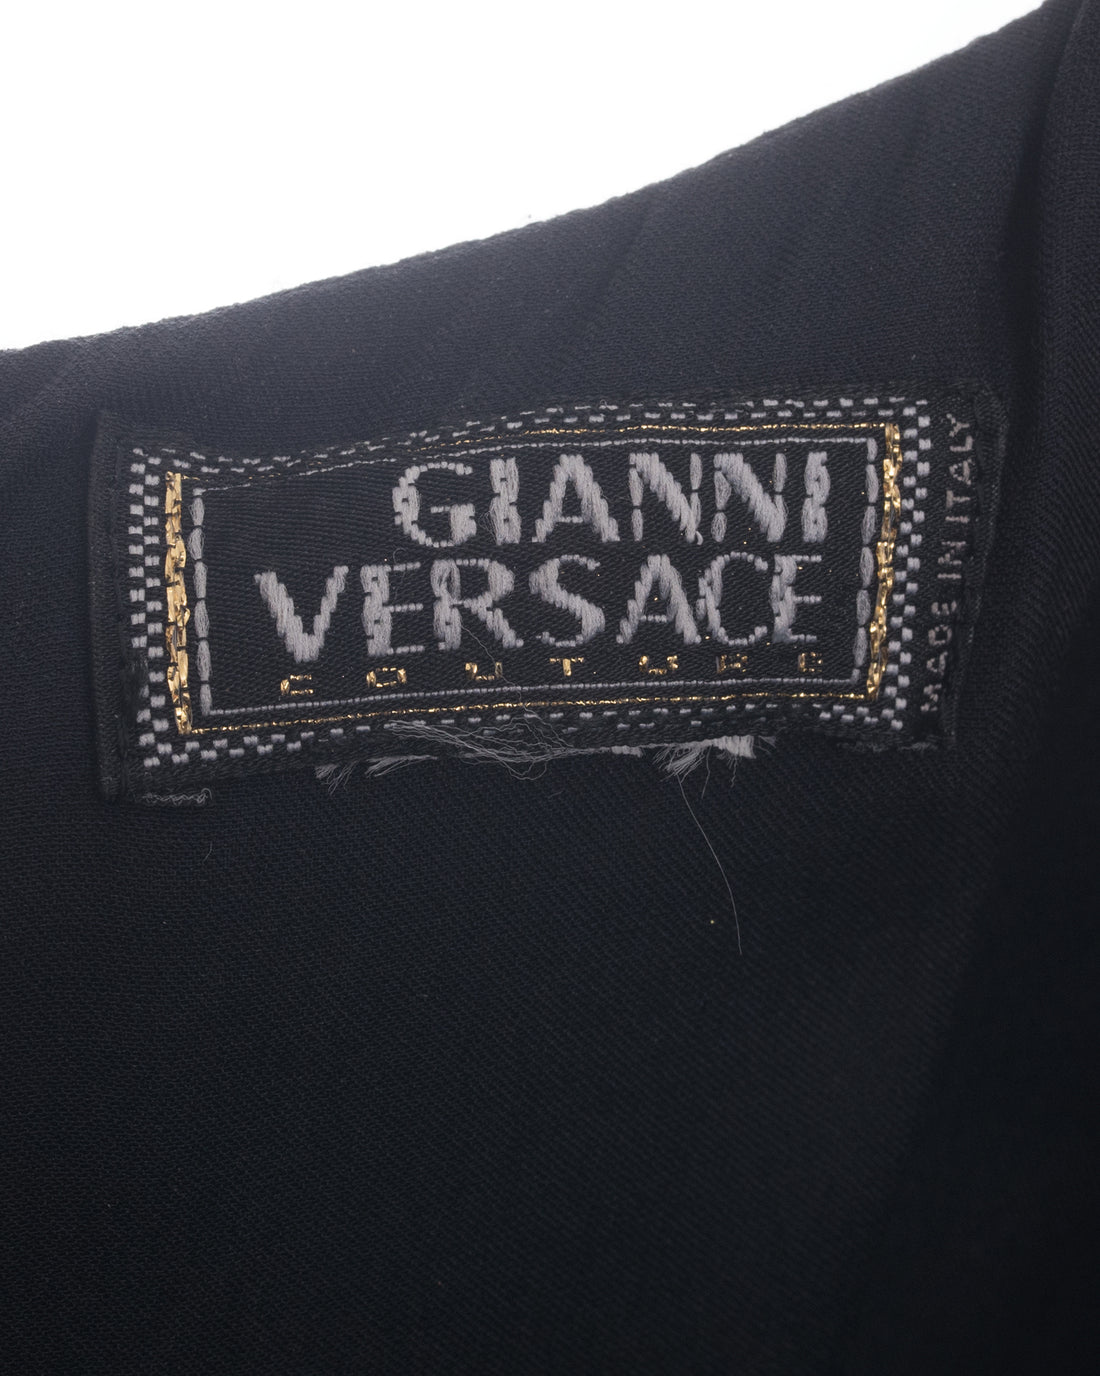 Gianni Versace Vintage 1990's Black Column Dress with Padded Shoulders - 4